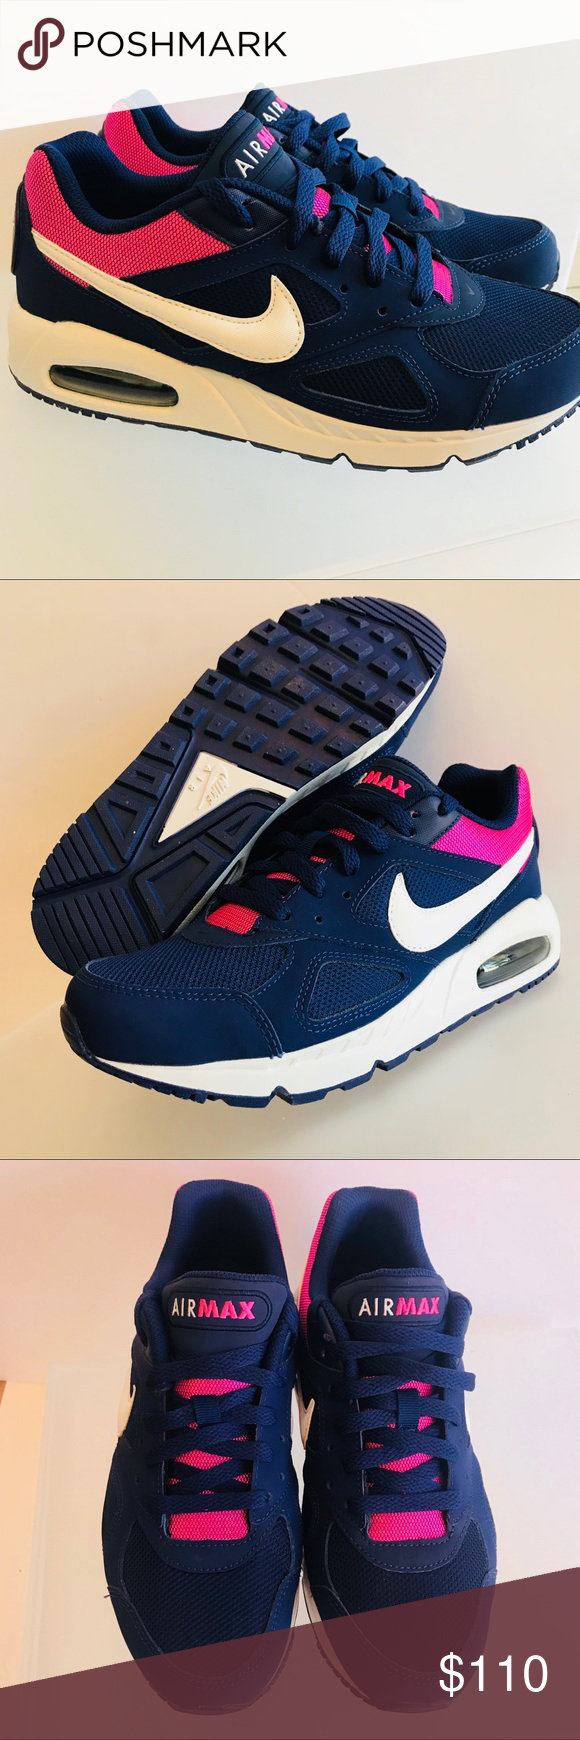 nike air max ivo trainers ladies size 8